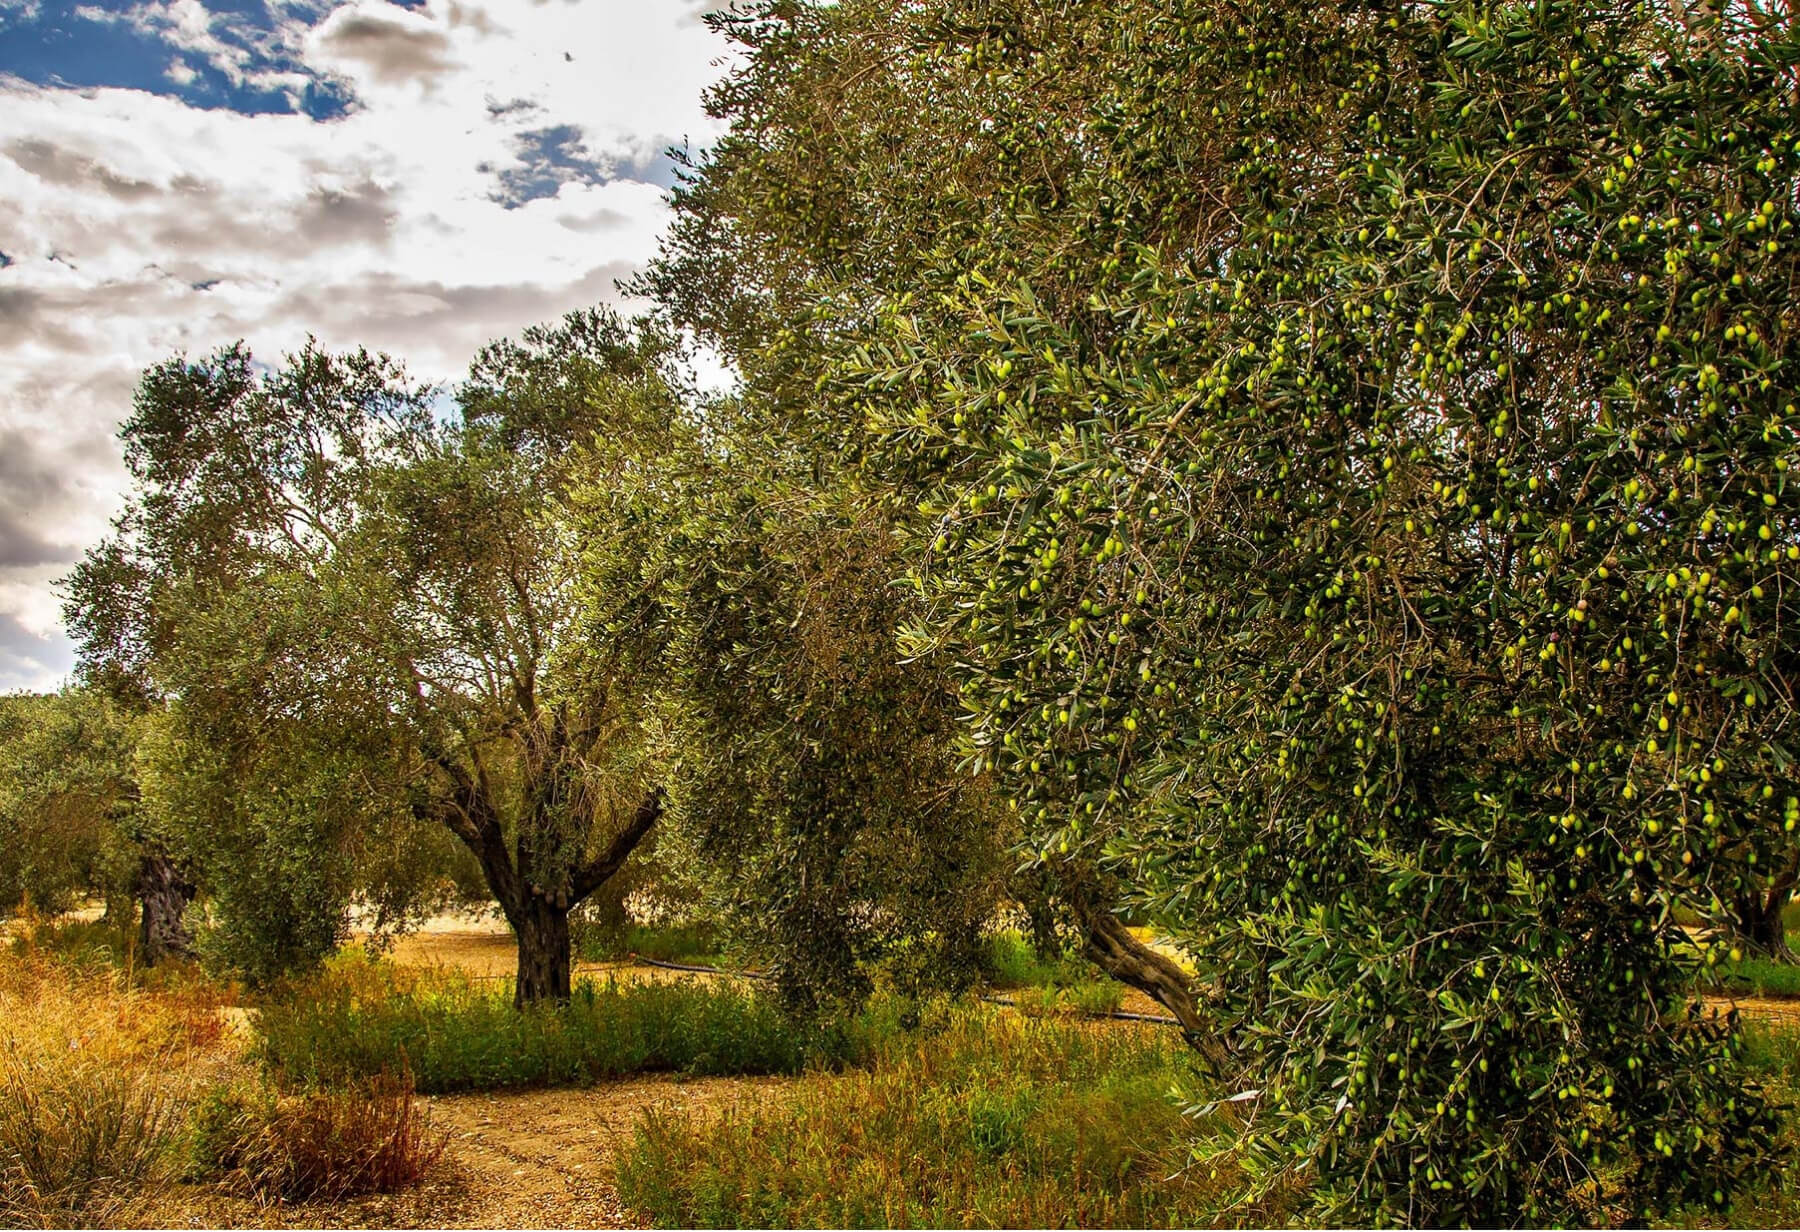 Why Kypriako/Kibrisli/Cypriot olives in Colive EVOO?